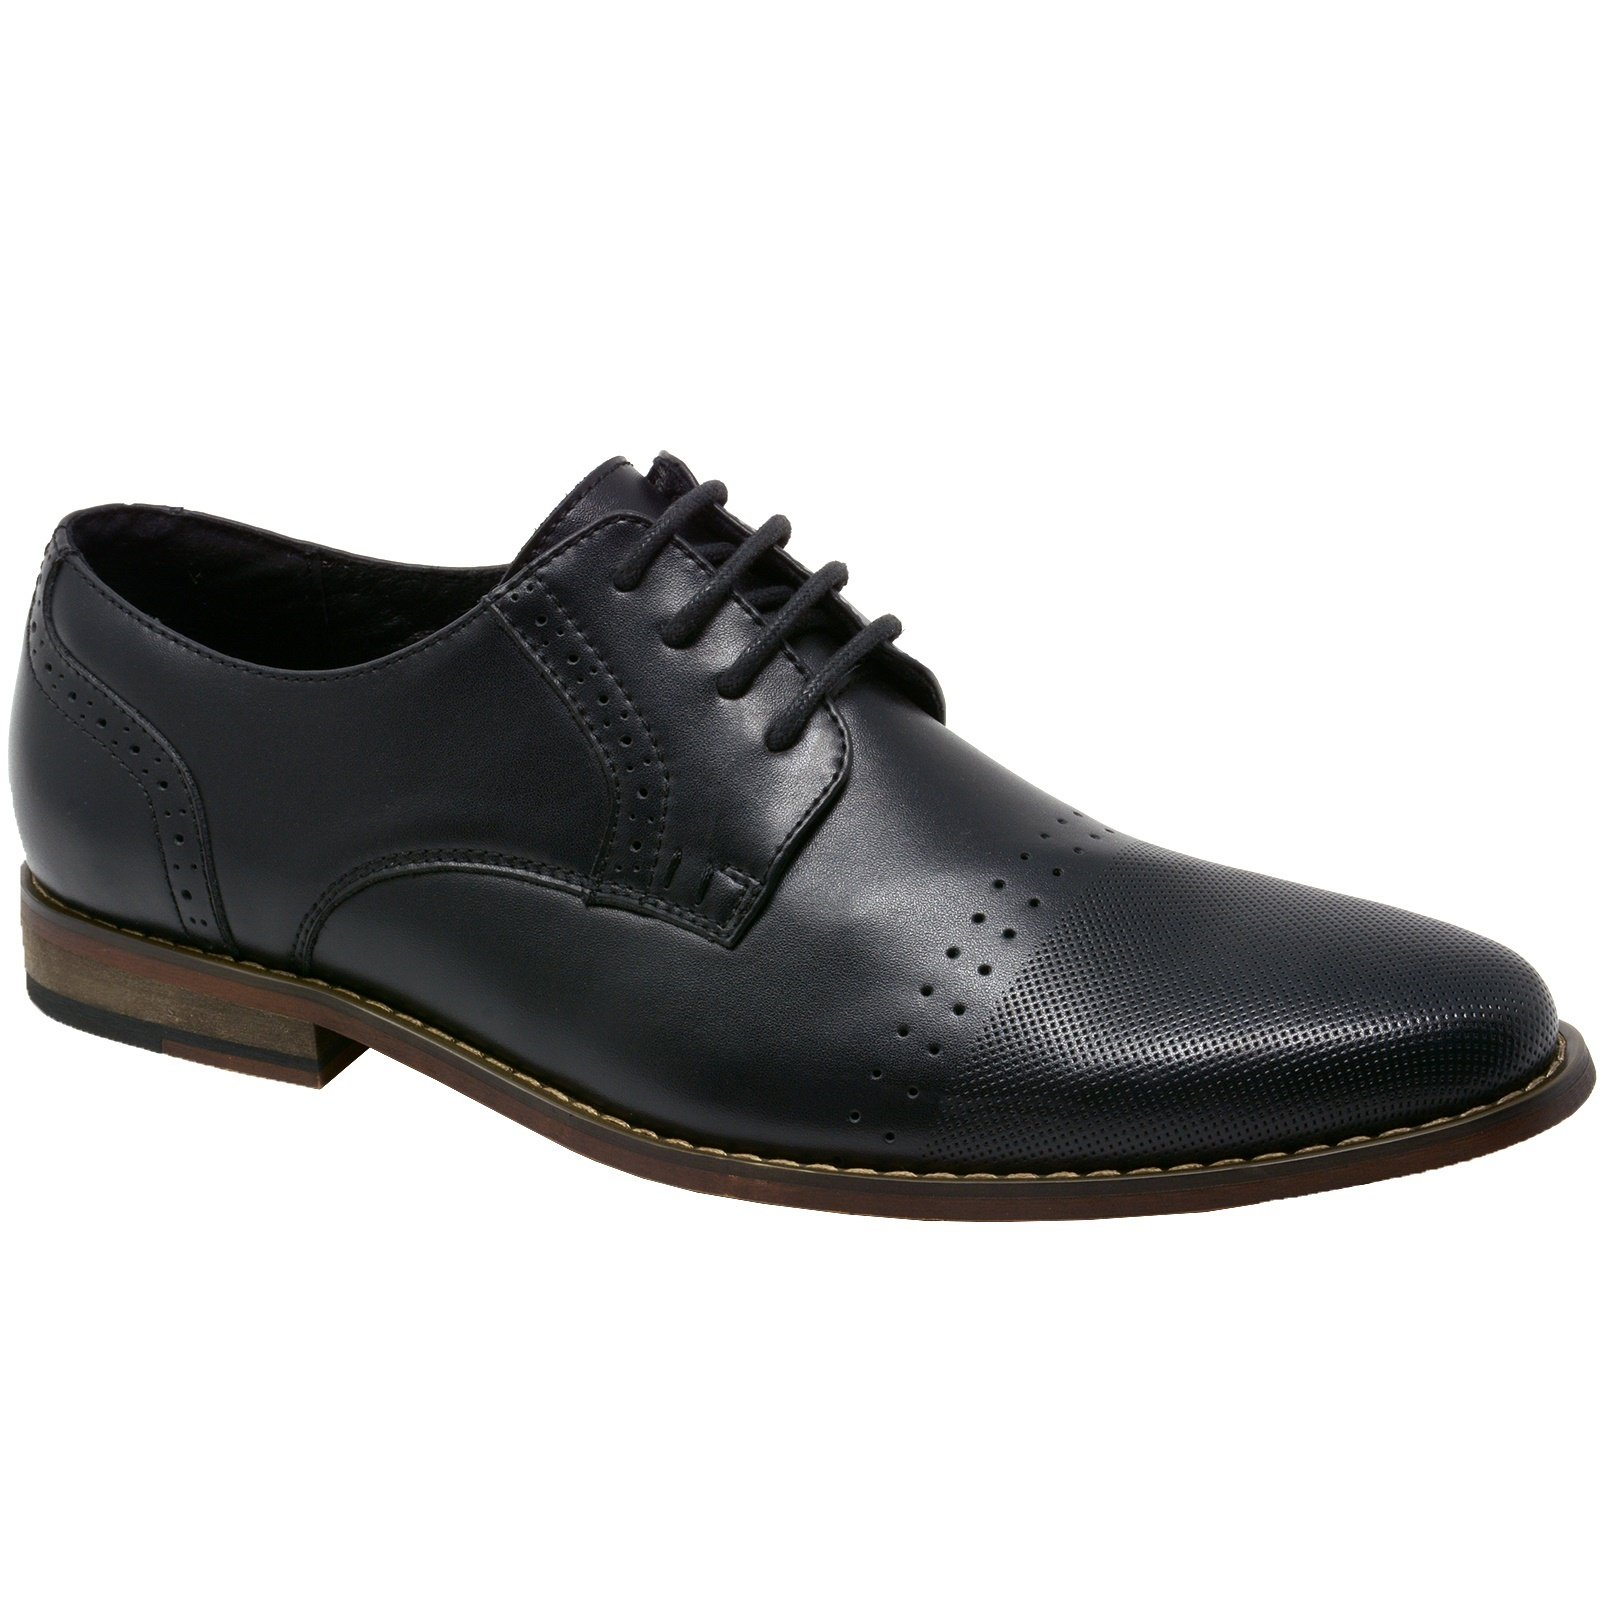 Double Diamond By Alpine Swiss Men's Genuine Leather Lace up Oxfords Dress Shoes BLK 10 M US